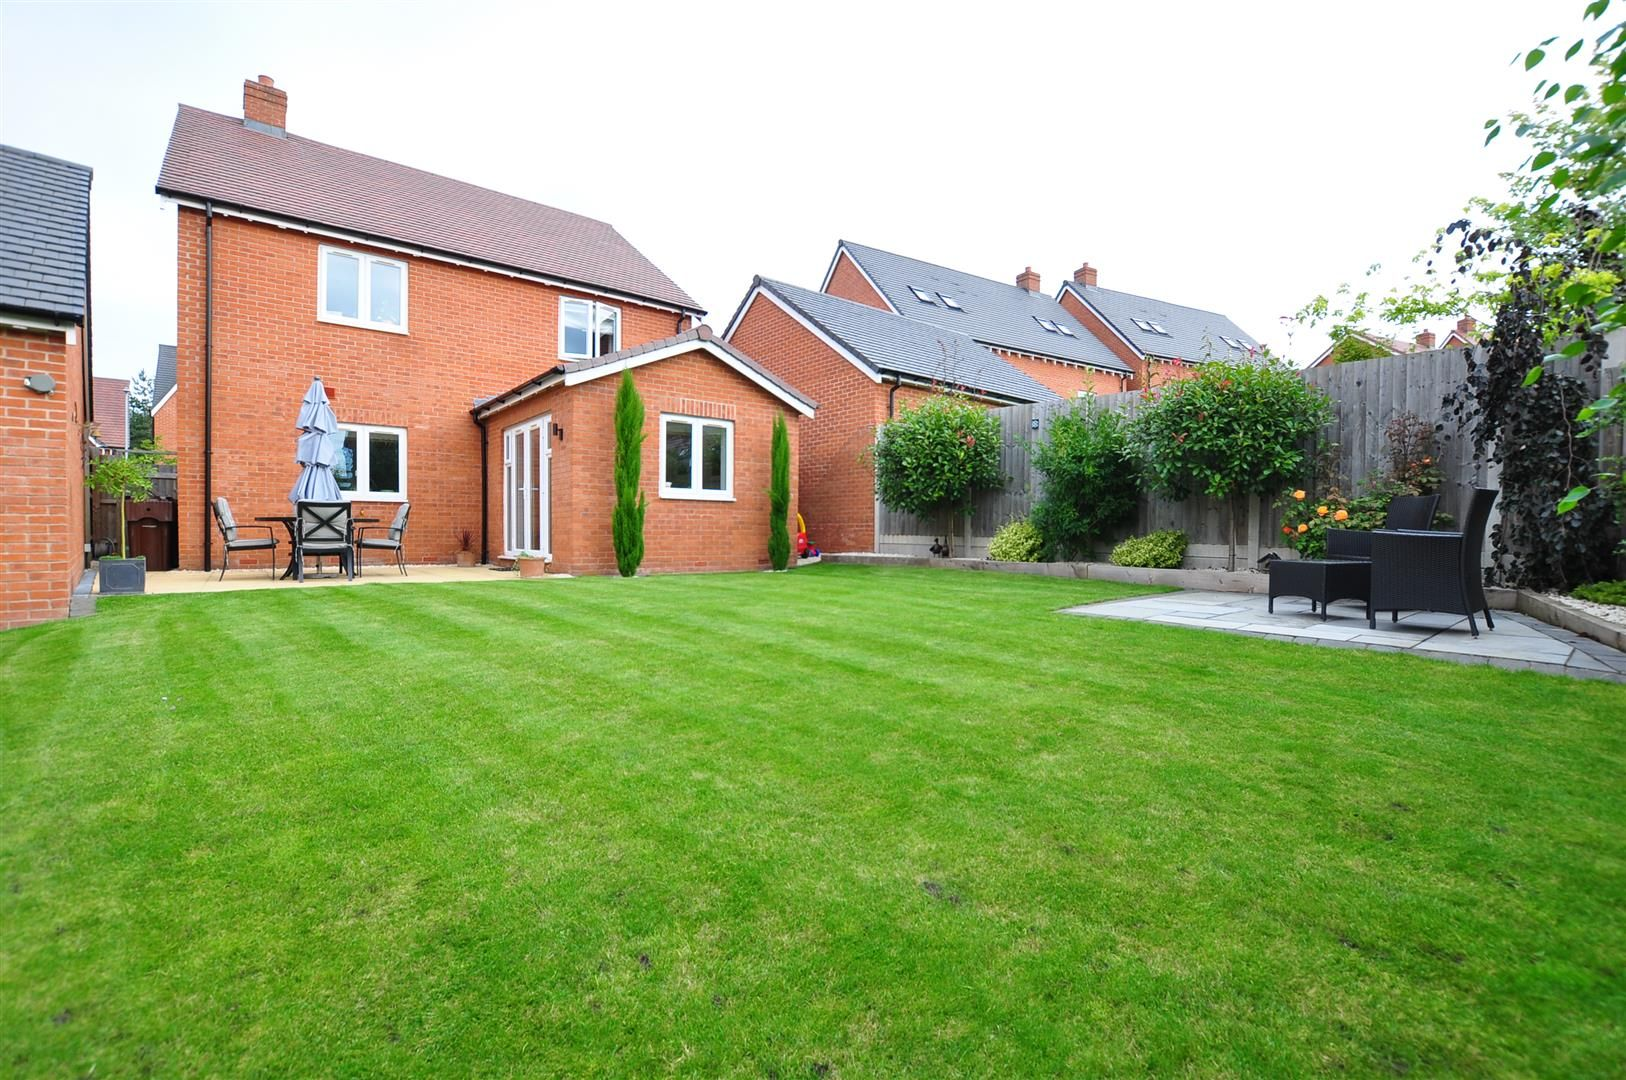 4 bed detached for sale in Hagley 23